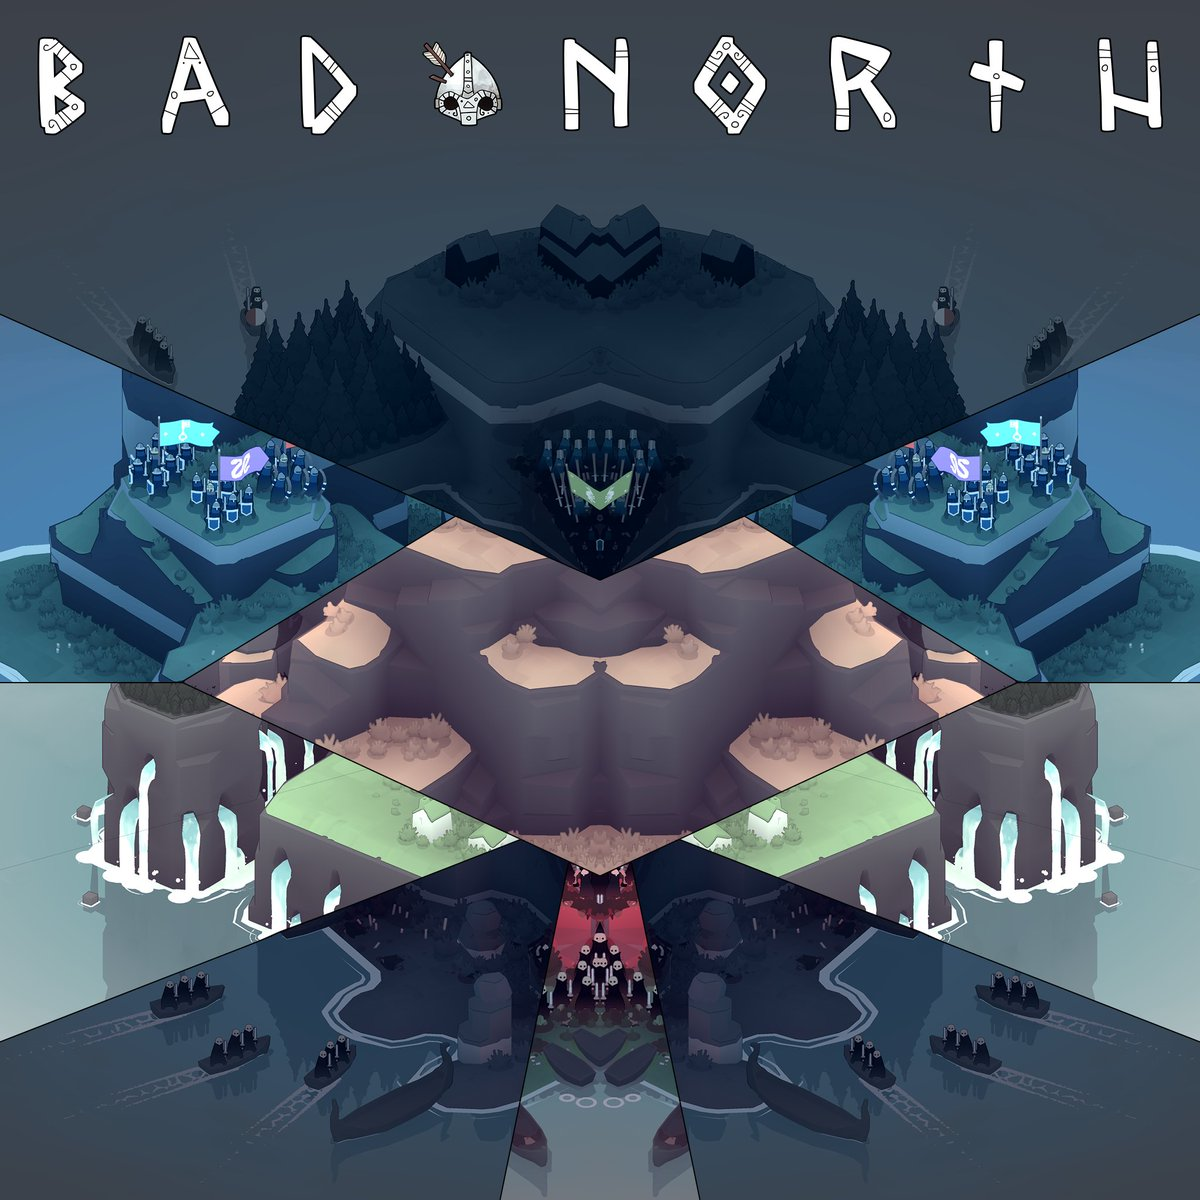 ✨🎯⚔ My first indie game Bad North is now out on Switch! ⚔🎯✨ Ive had tons of fun exploring and developing all the interesting tech, design and aesthetics that went into it. Go buy it so I can keep up this lovely indie lifestyle: nintendo.com/games/detail/b…